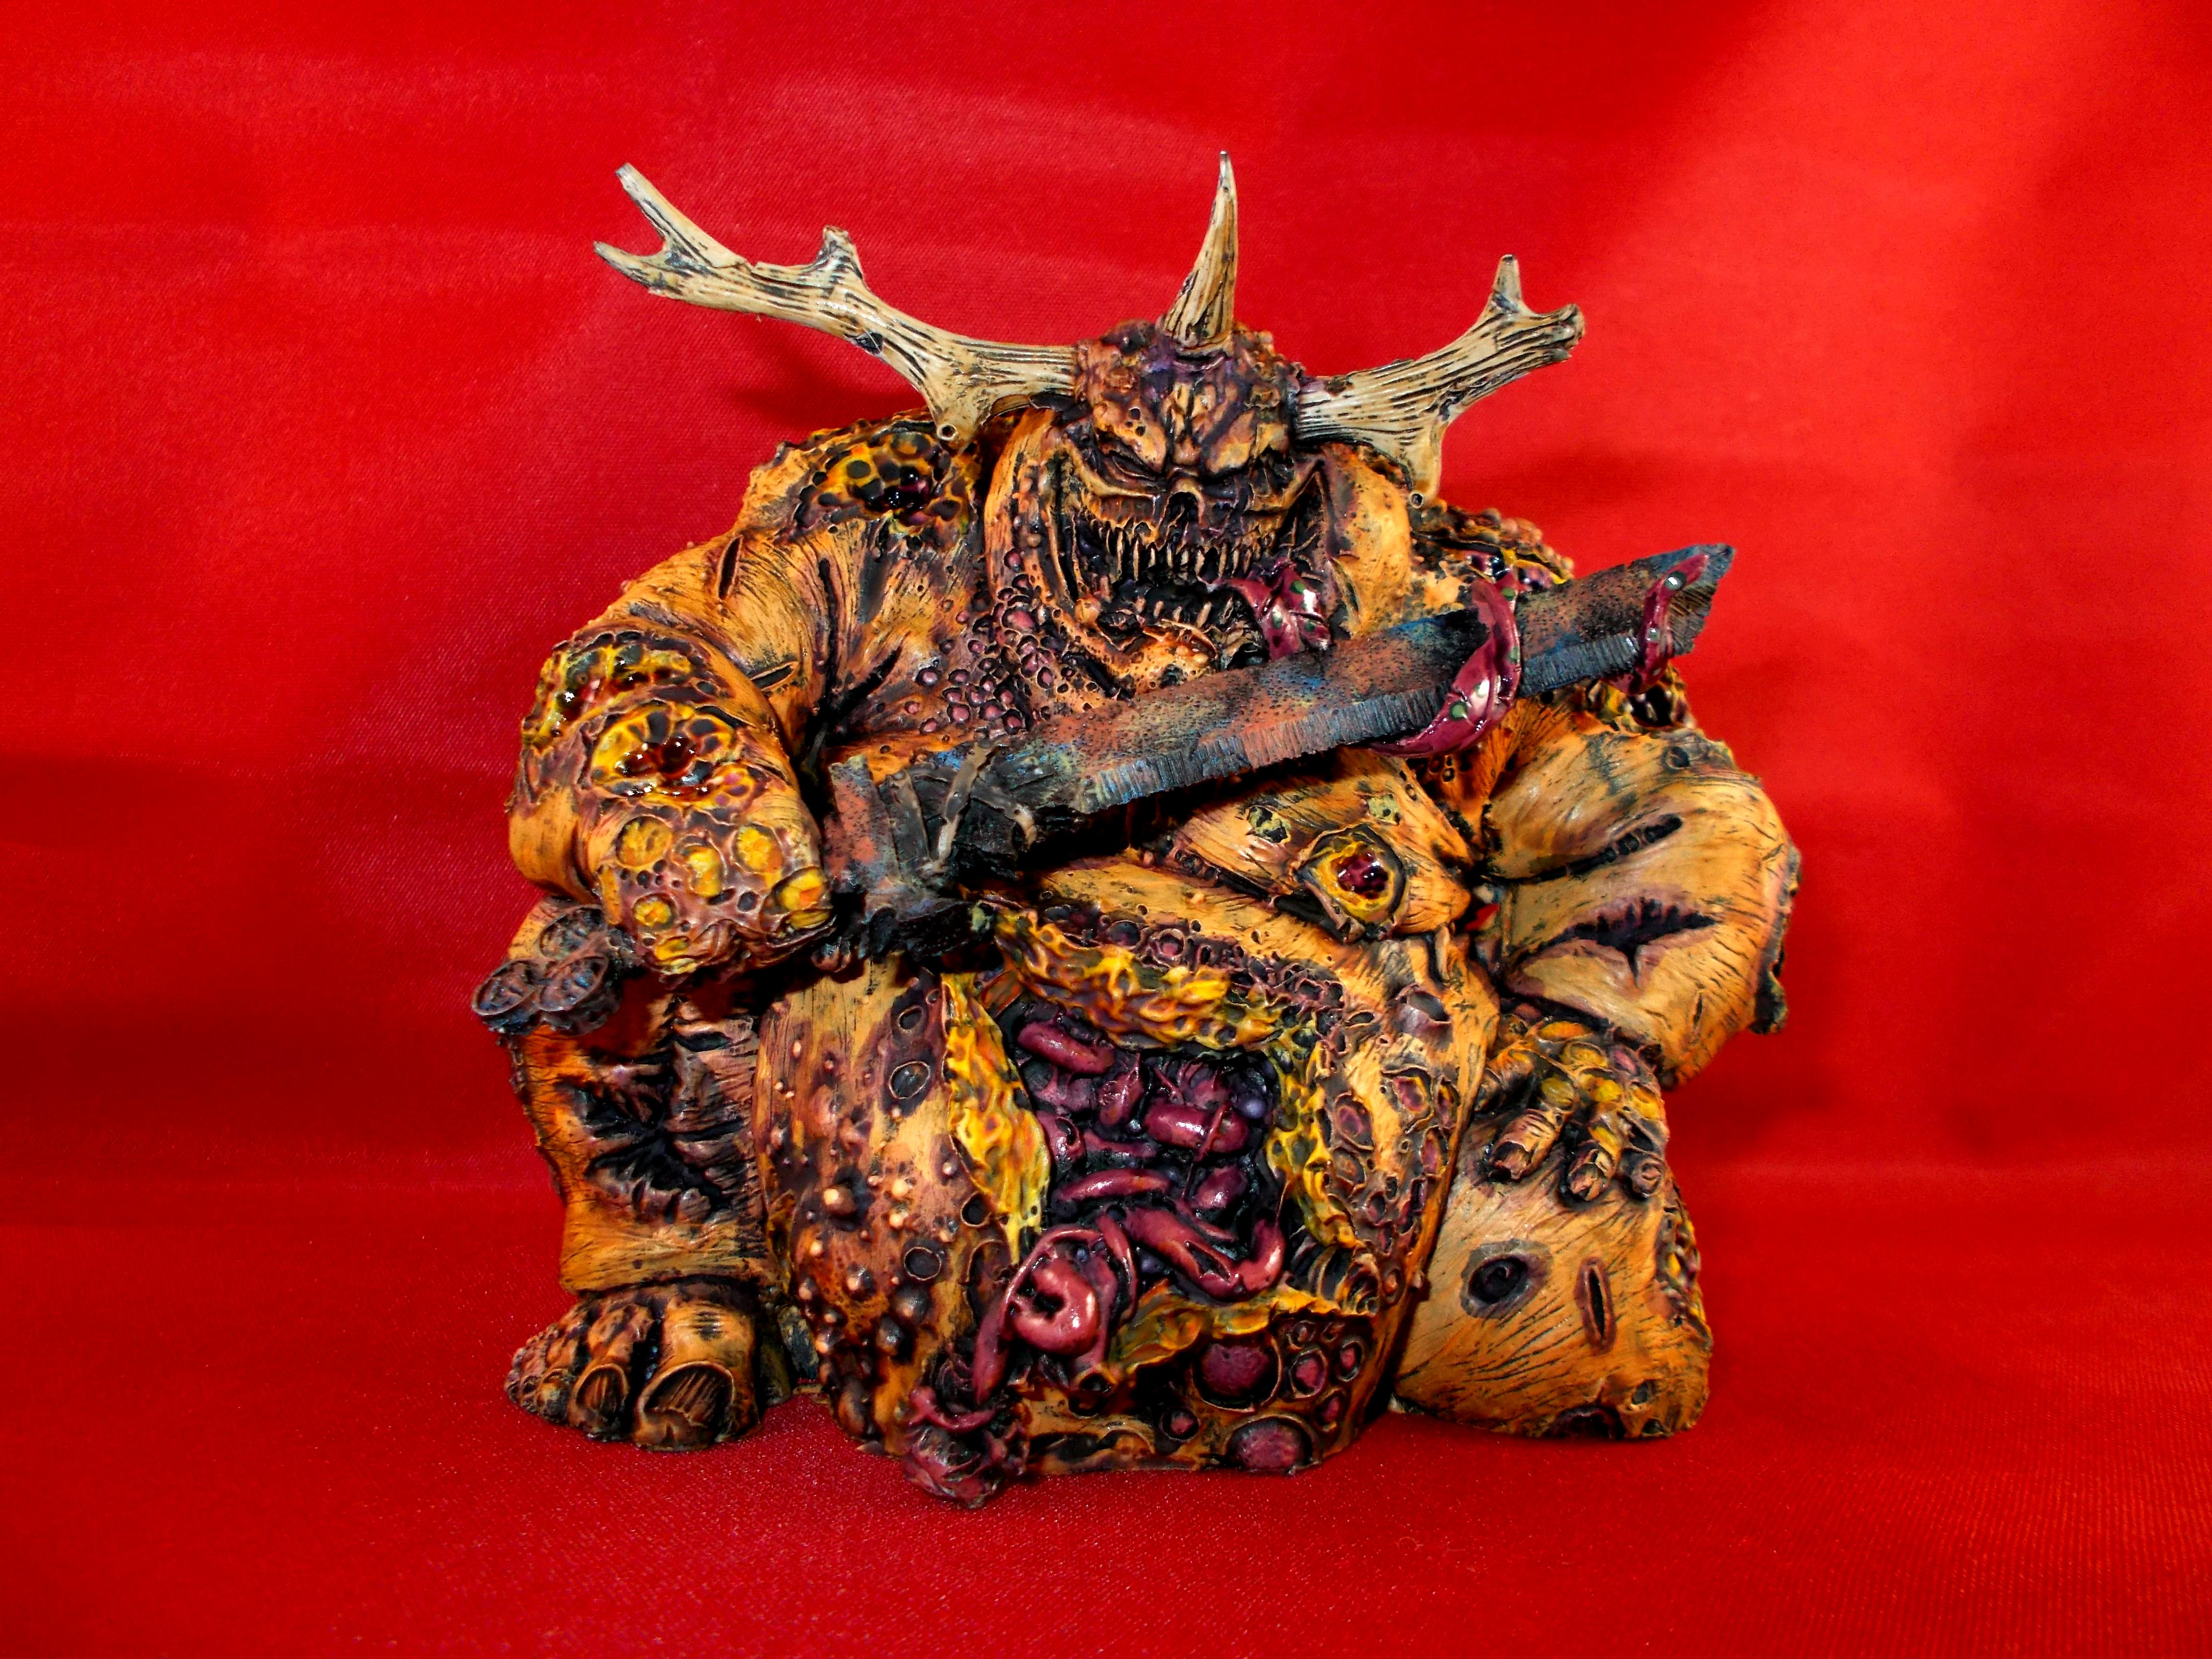 Chaos Daemons, Forge World, Great Unclean One, Greater Daemon, Nurgle, Warhammer Fantasy